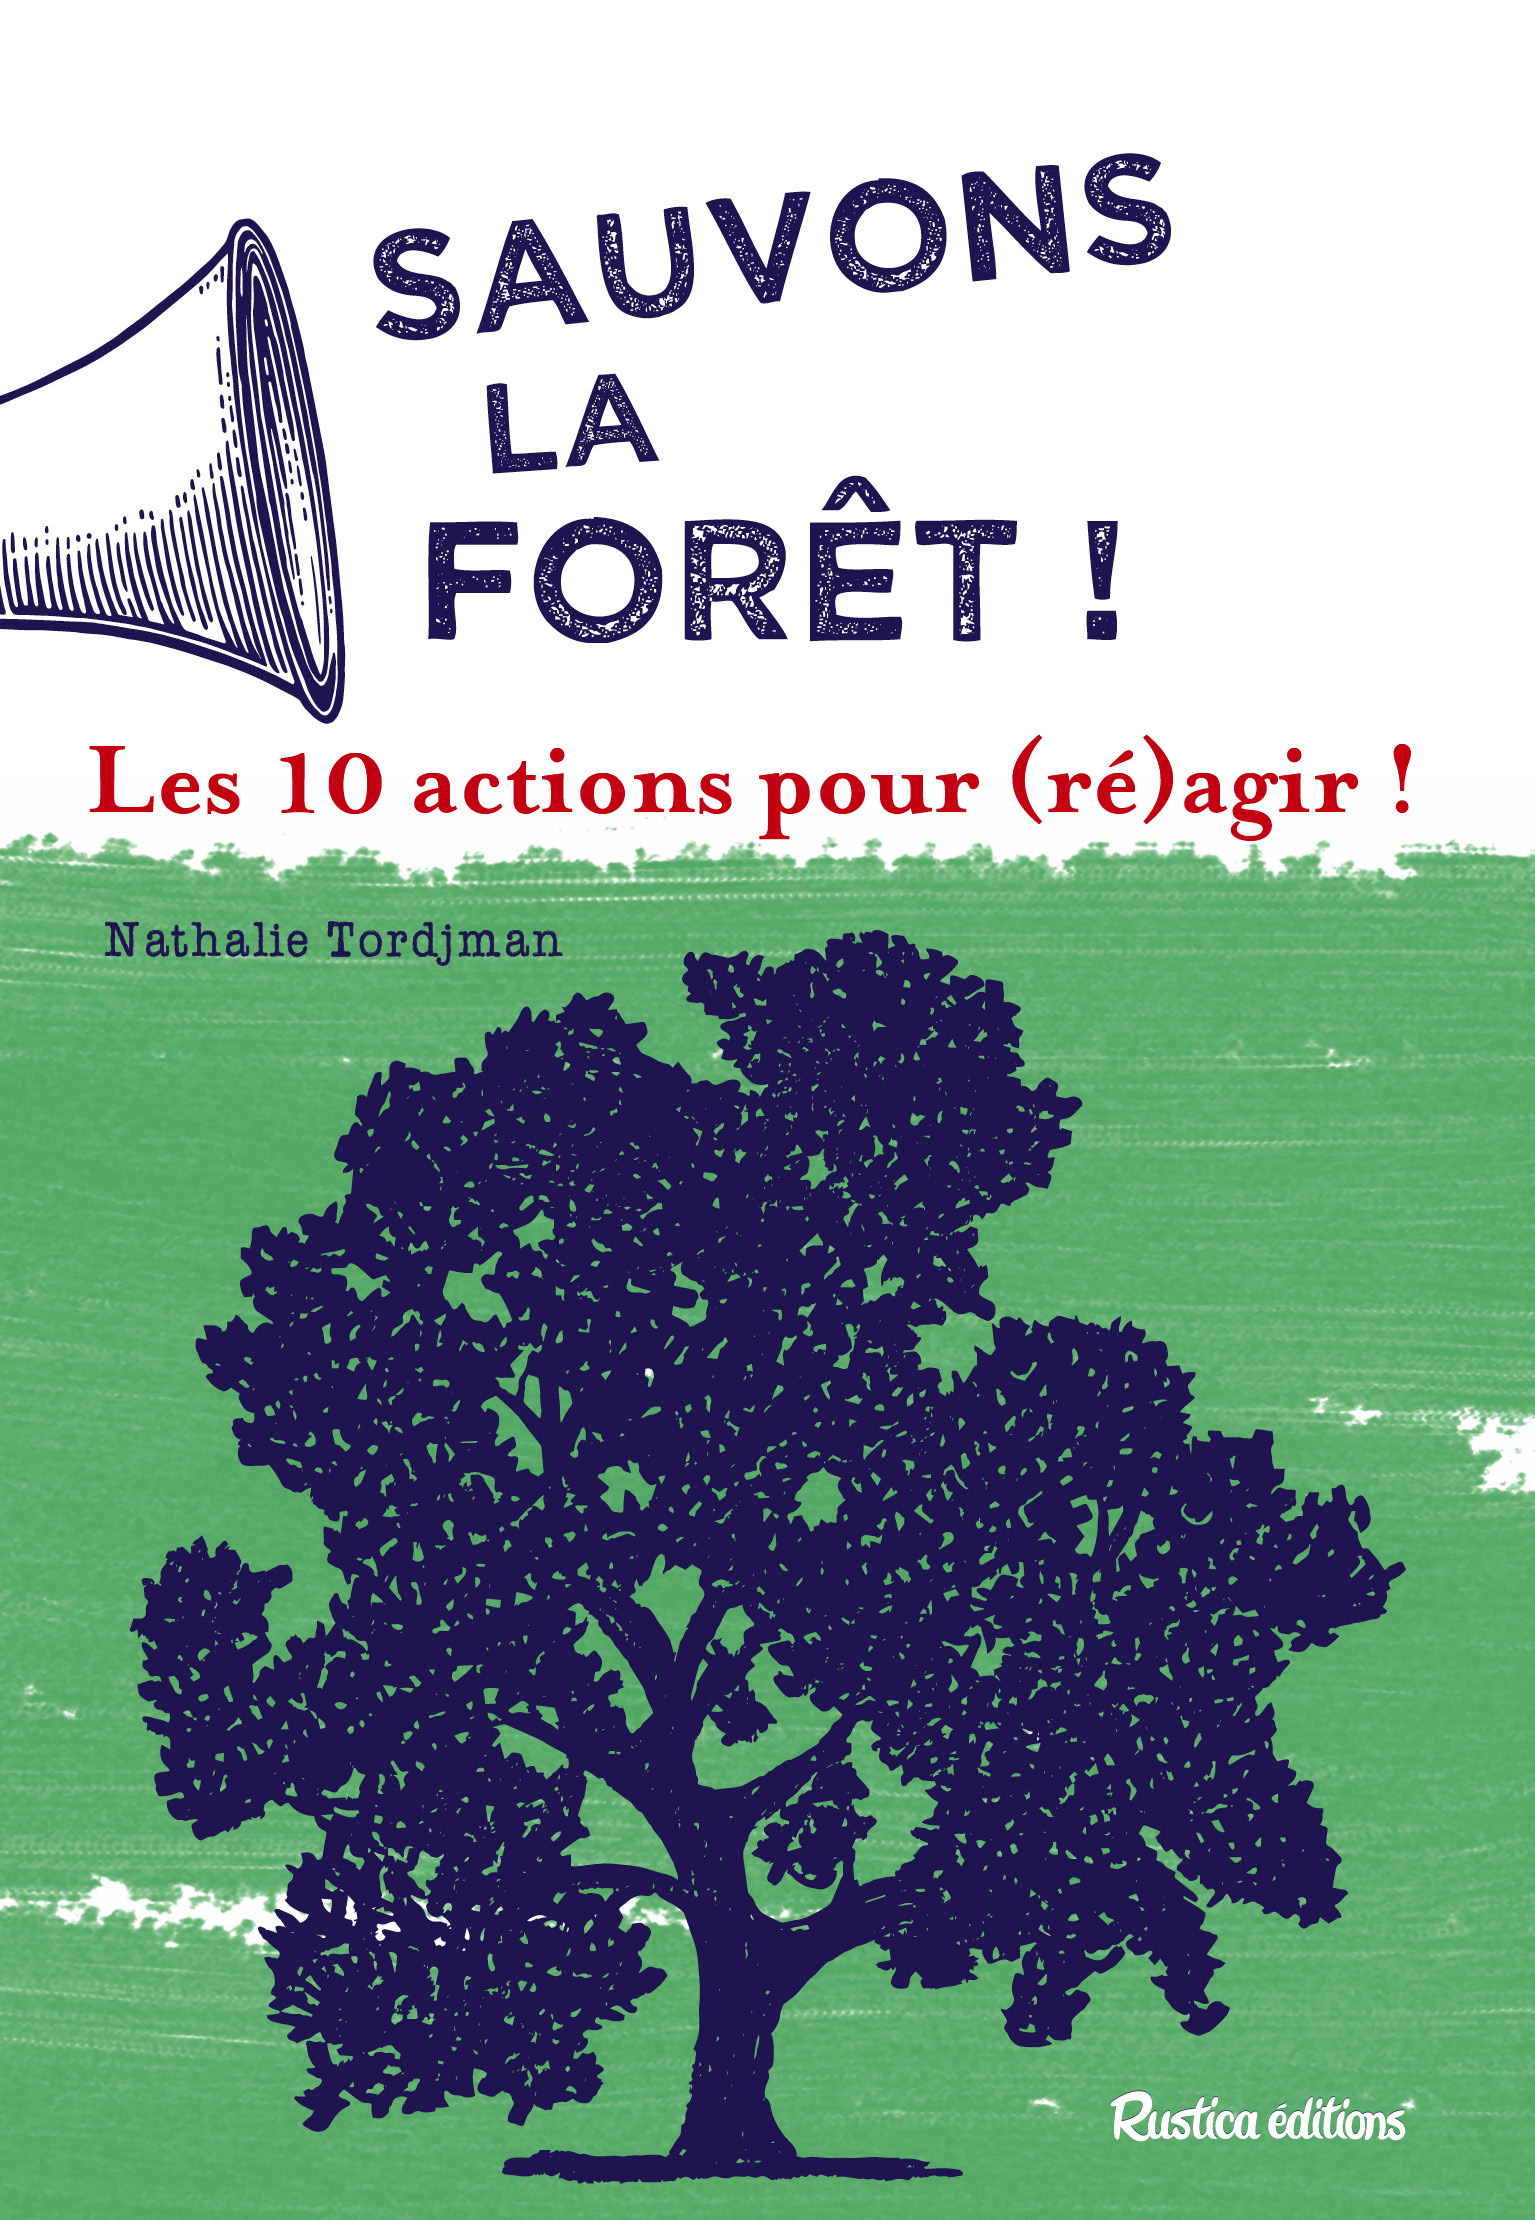 SAUVONS LES FORETS !